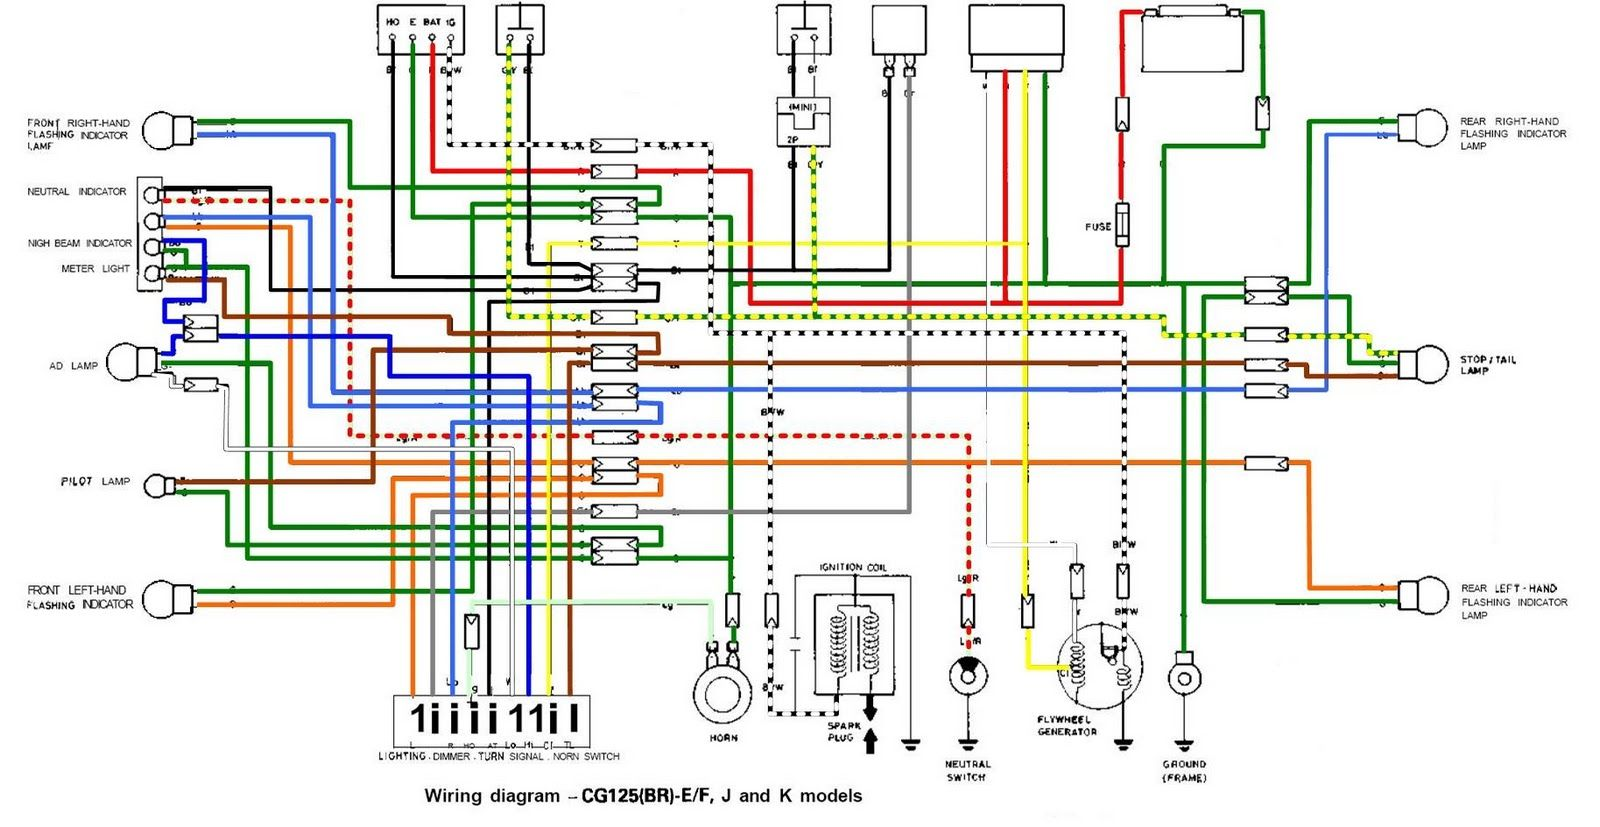 atc 125m wiring diagram all wiring diagram Honda SL350